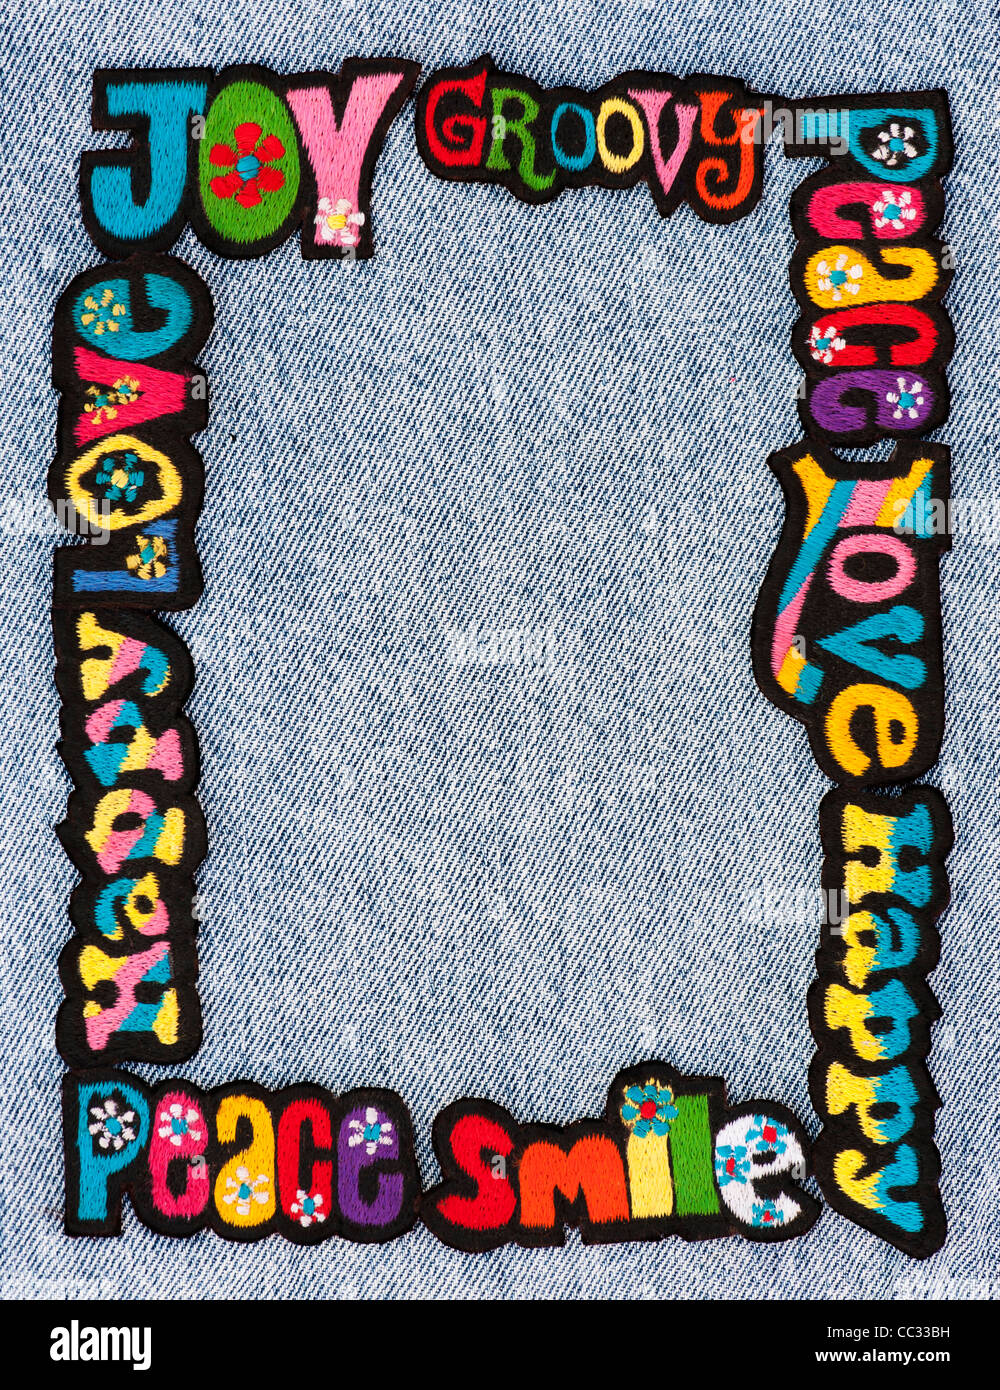 Embroidery iron on patches of Multicoloured Love, Peace, Happy, Smile and Joy words on a denim jean background - Stock Image